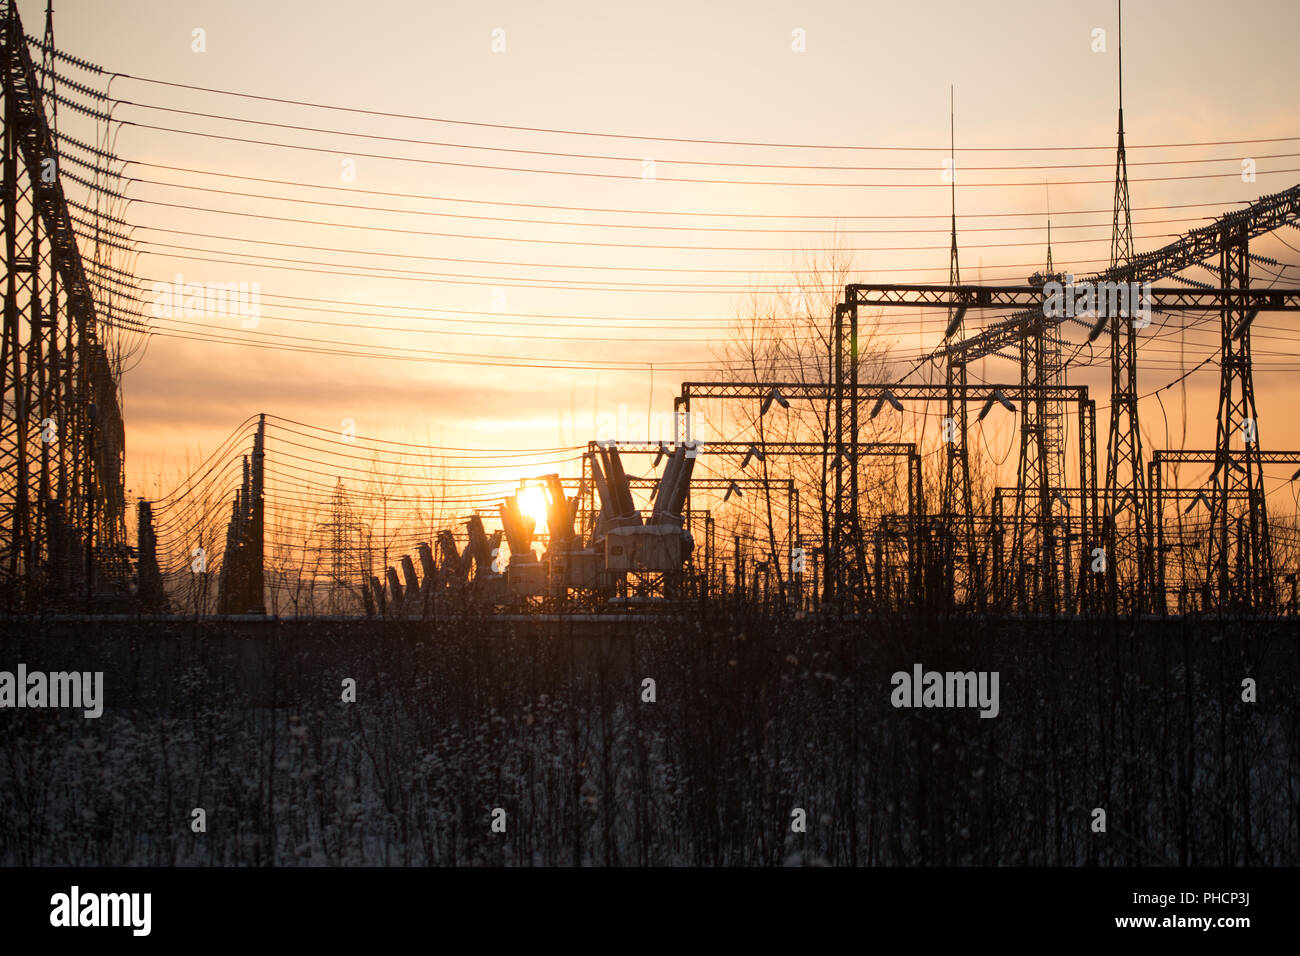 Electrical substation. - Stock Image